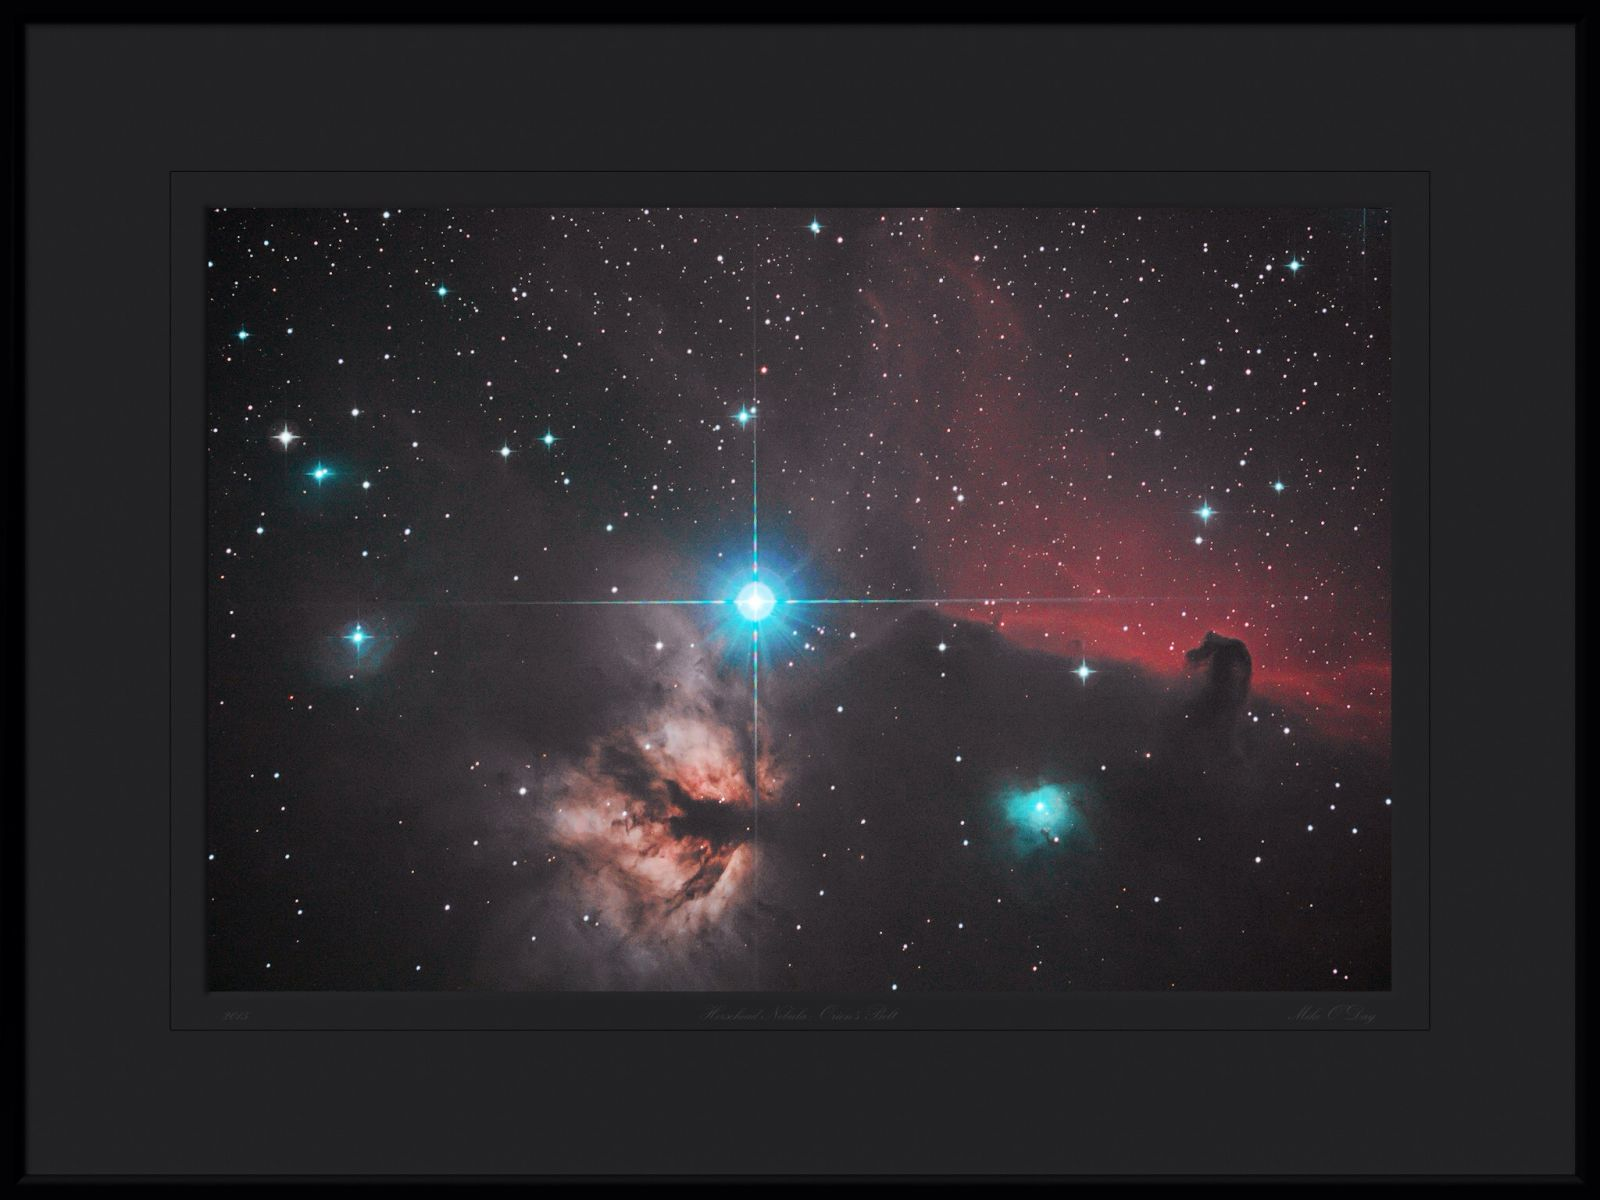 Alnitak on Orion's Belt with the Flame and Horsehead nebulae